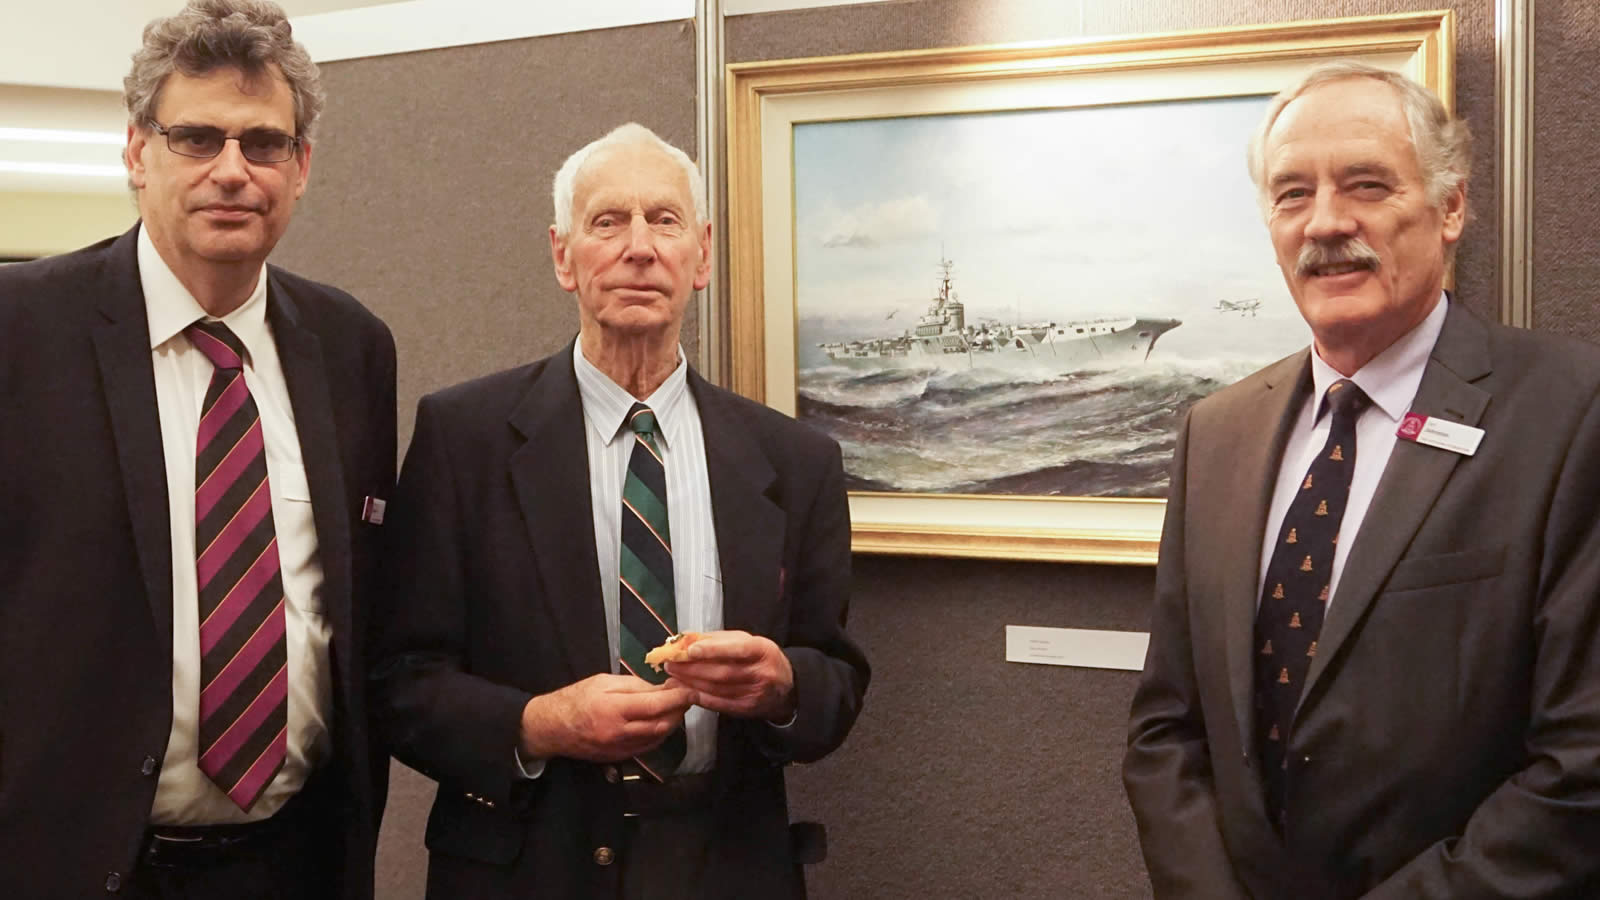 Professor Marcus Haward (Chairman of The Hutchins School Board), Mr John Brettingham-Moore and Mr Ian Johnston (President of The Hutchins Foundation).